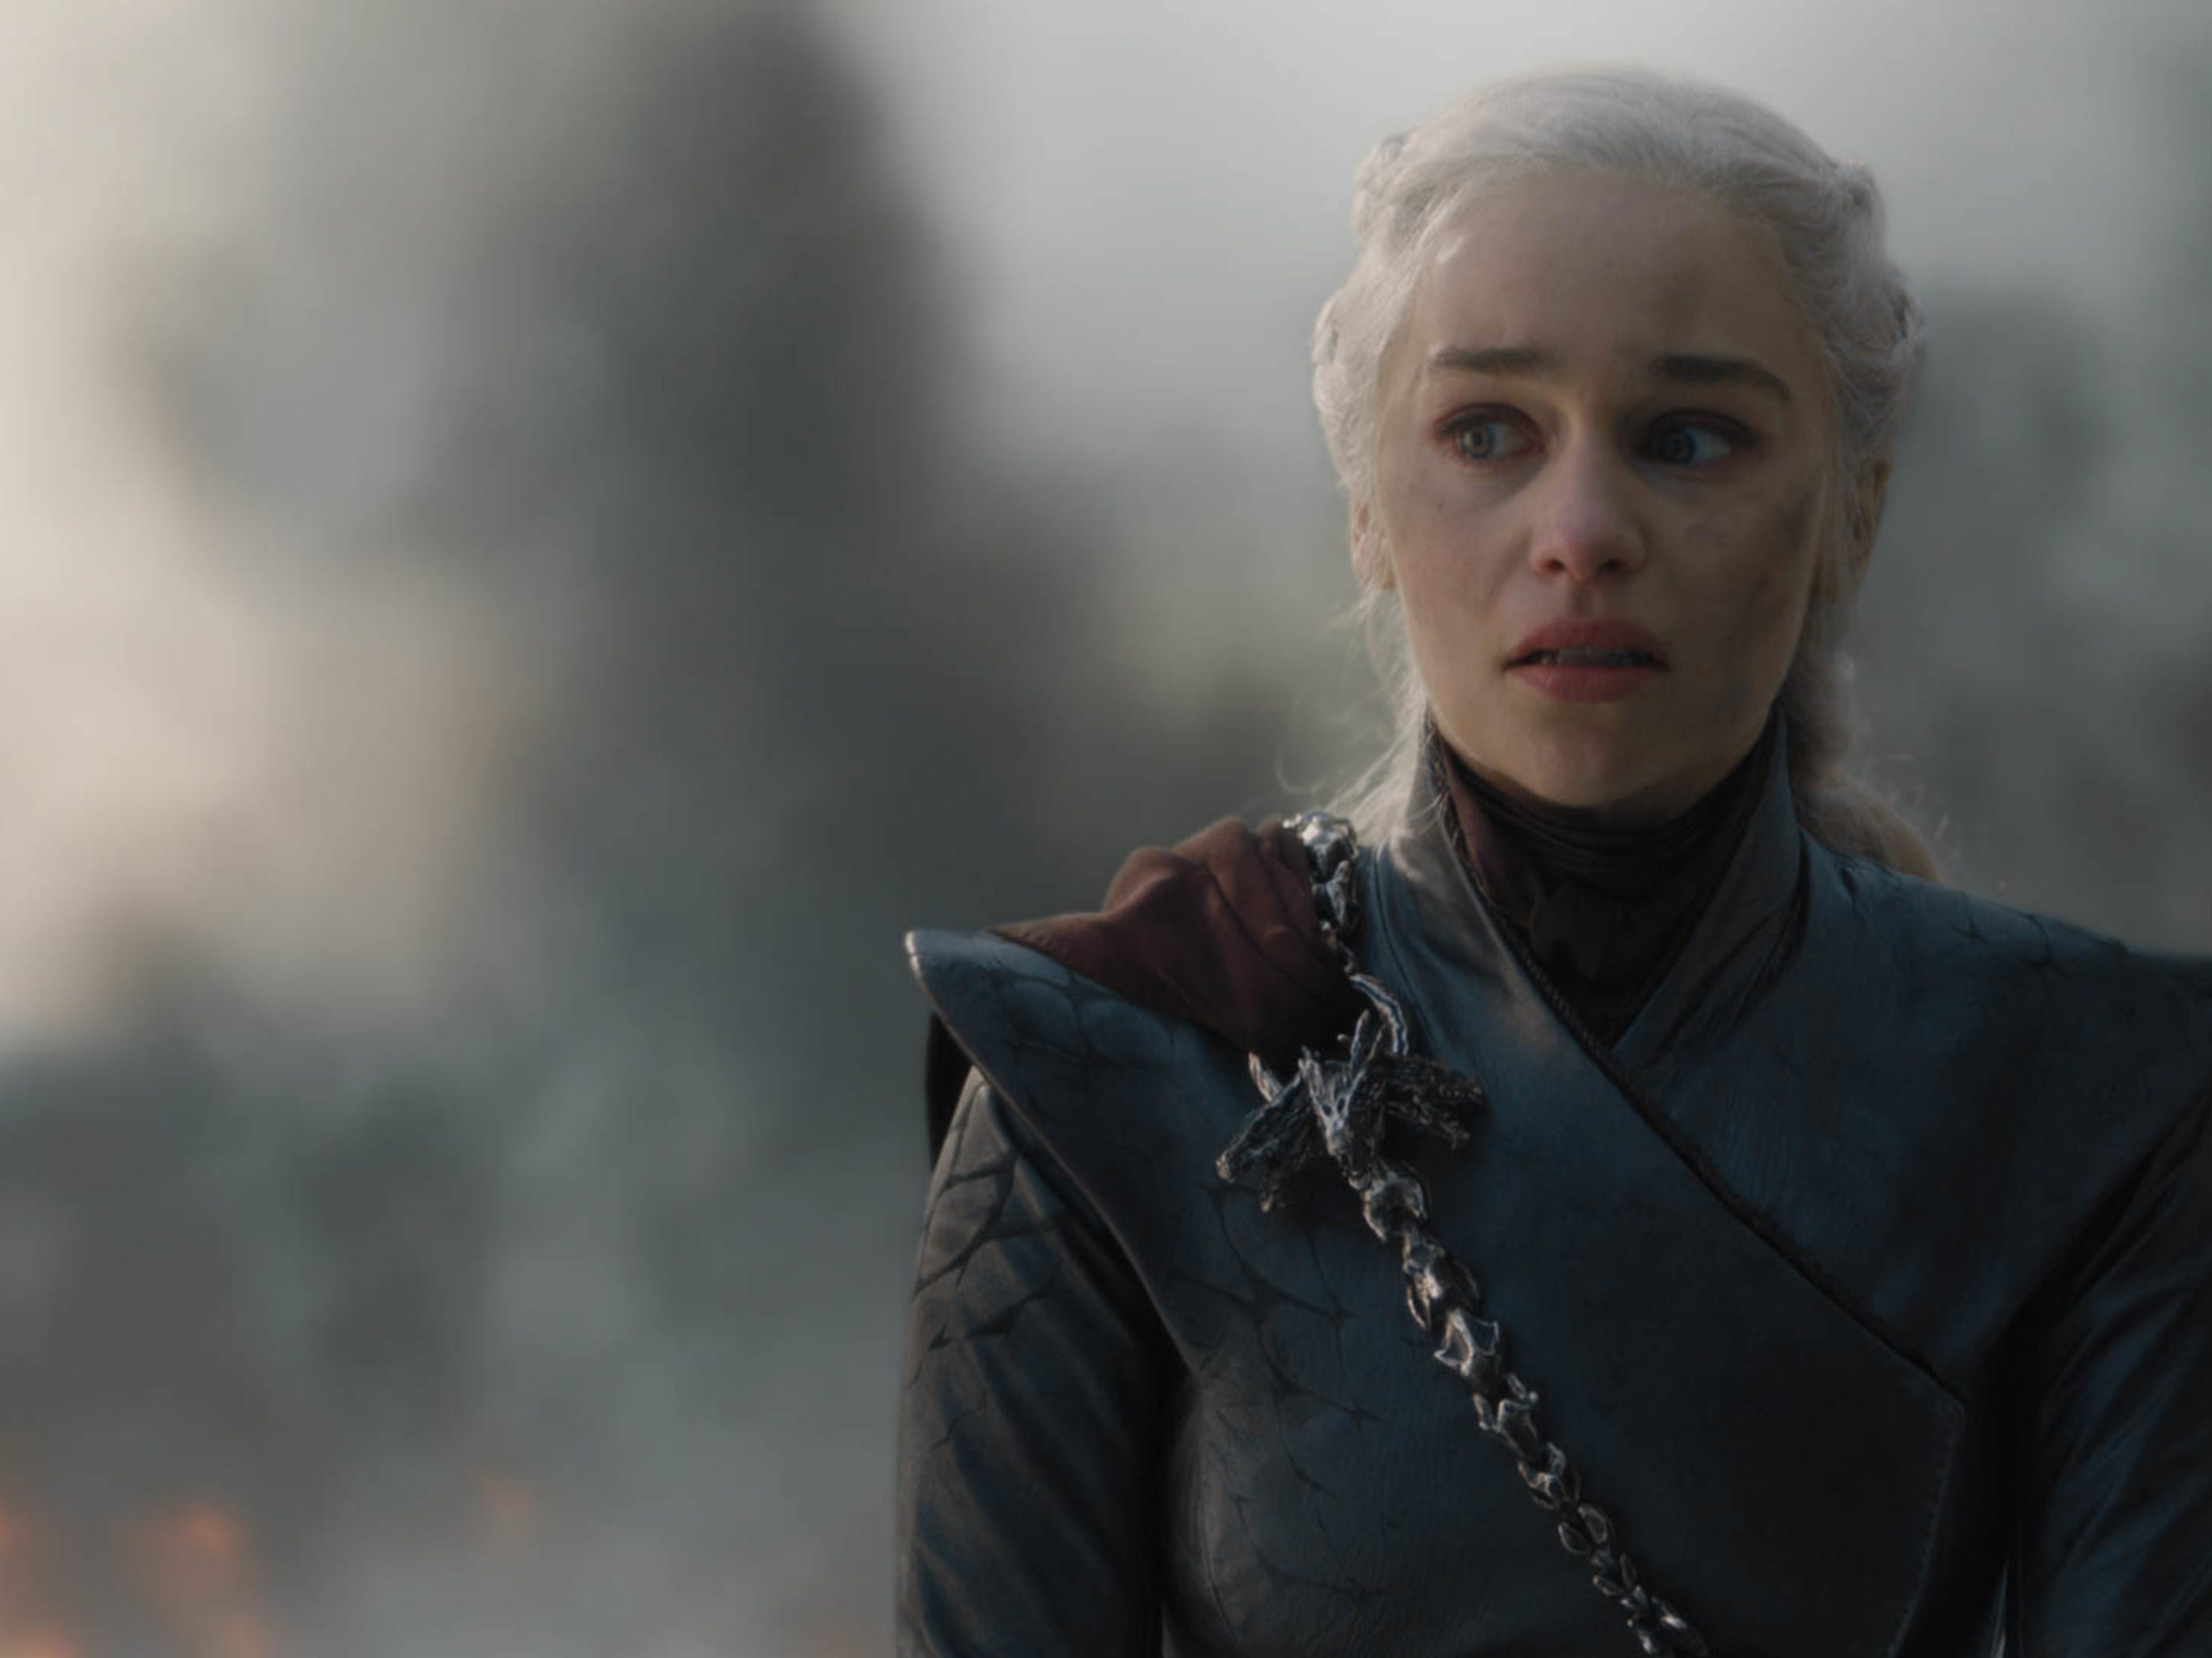 Daenerys Targaryen (Emilia Clarke), paused briefly in triumph, before having her dragon destroy much of King's Landing.